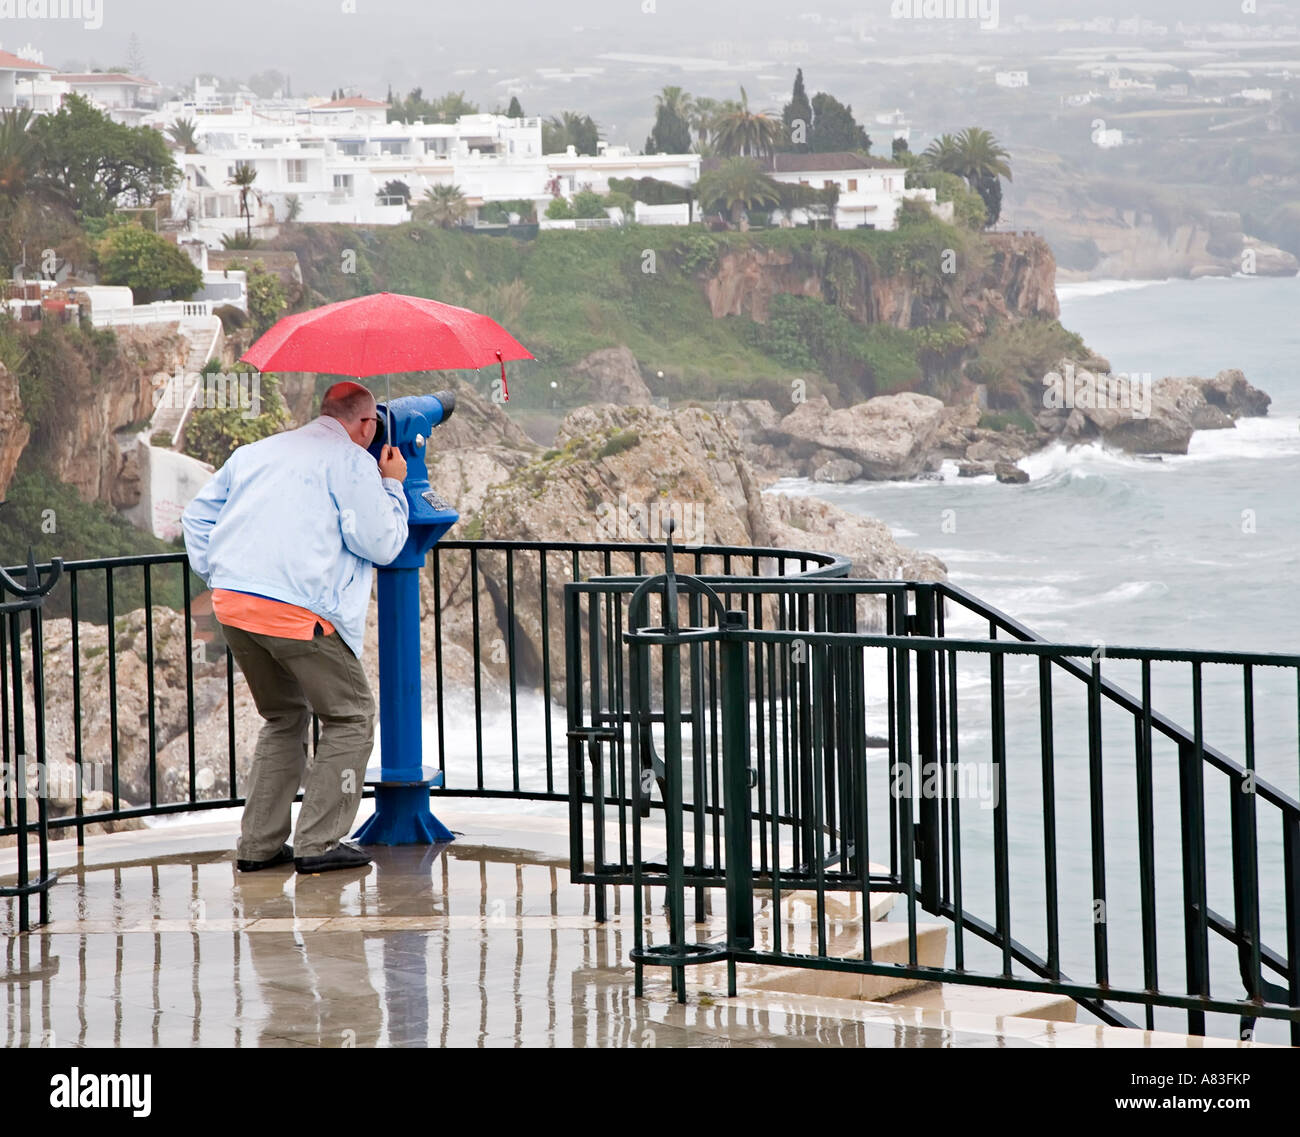 tourist with umbrella in pouring rain using seaside telescope balcon stock photo royalty free. Black Bedroom Furniture Sets. Home Design Ideas